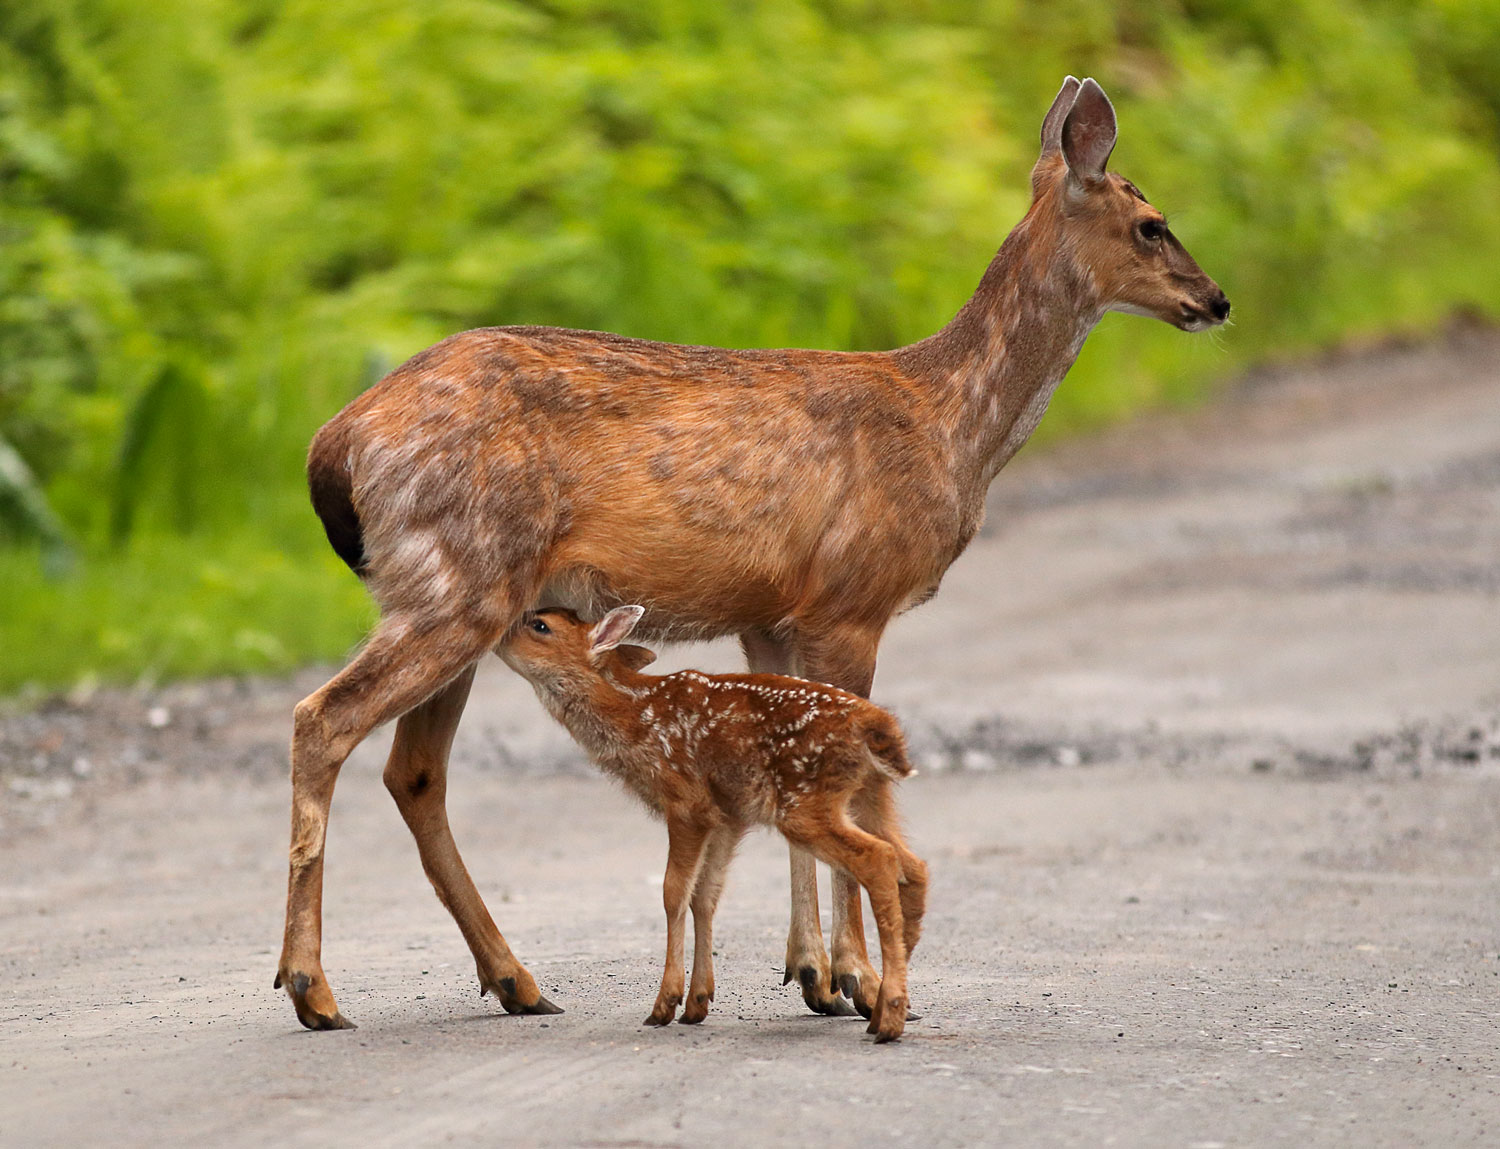 cute fawn nursing deer doe Sitka Blacktail Southeast Alaska sweet pretty